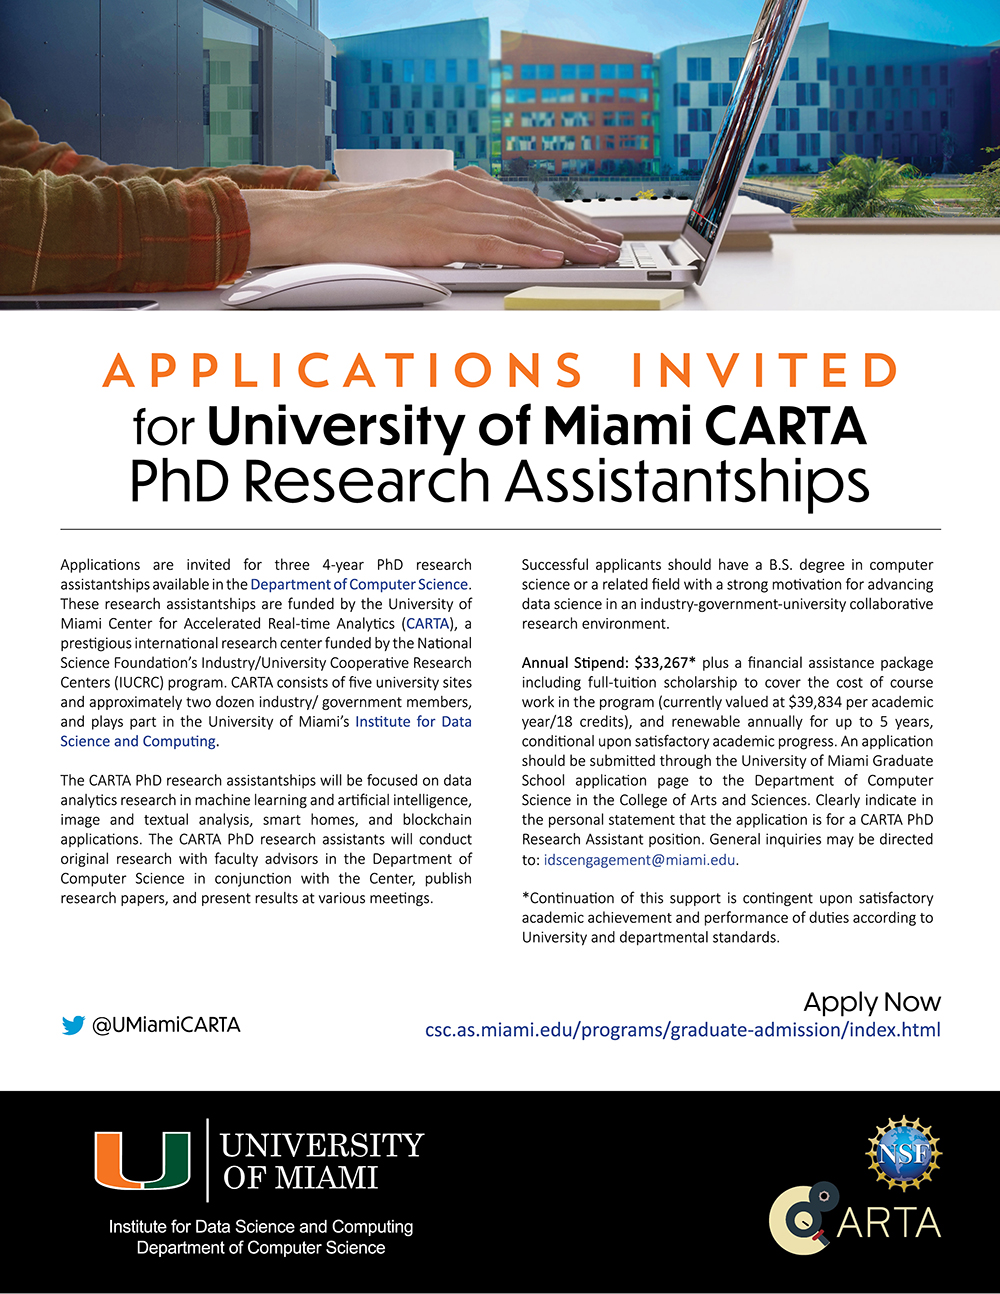 University of Miami Center for Accelerated Real Time Analytics PhD Research Assistantships FLYER